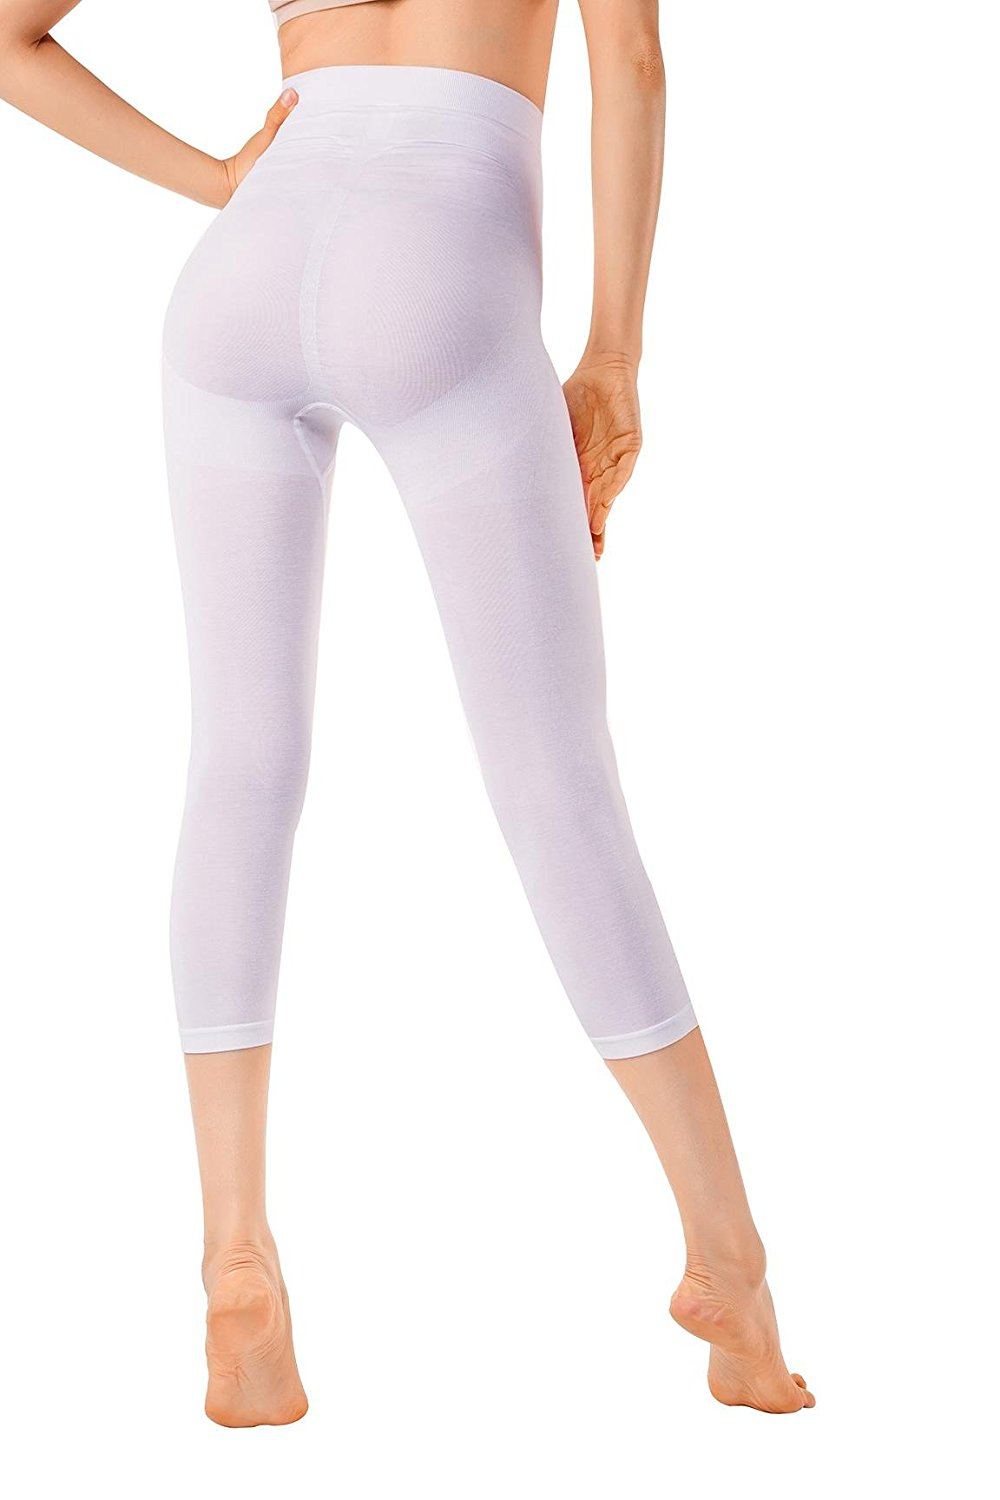 6693780e0db MD Shapewear Yoga Pant And Sports Leggings For Women Tummy Hips And Thighs  Body Shaper